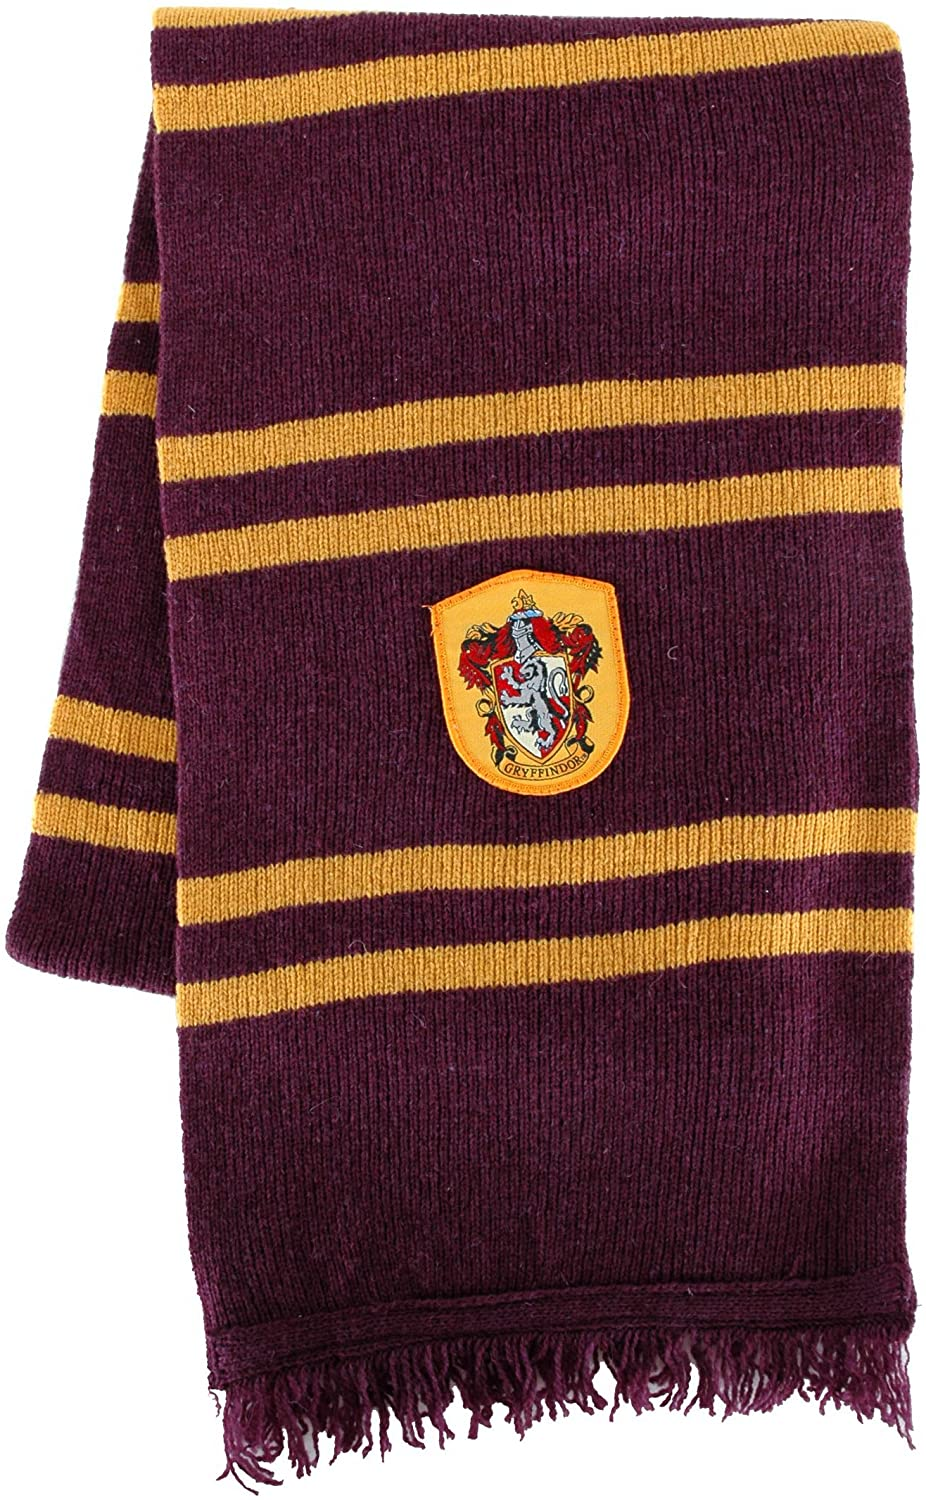 elope Harry Potter Officially Licensed Lamb's Wool Hogwarts House Scarf- Slytherin